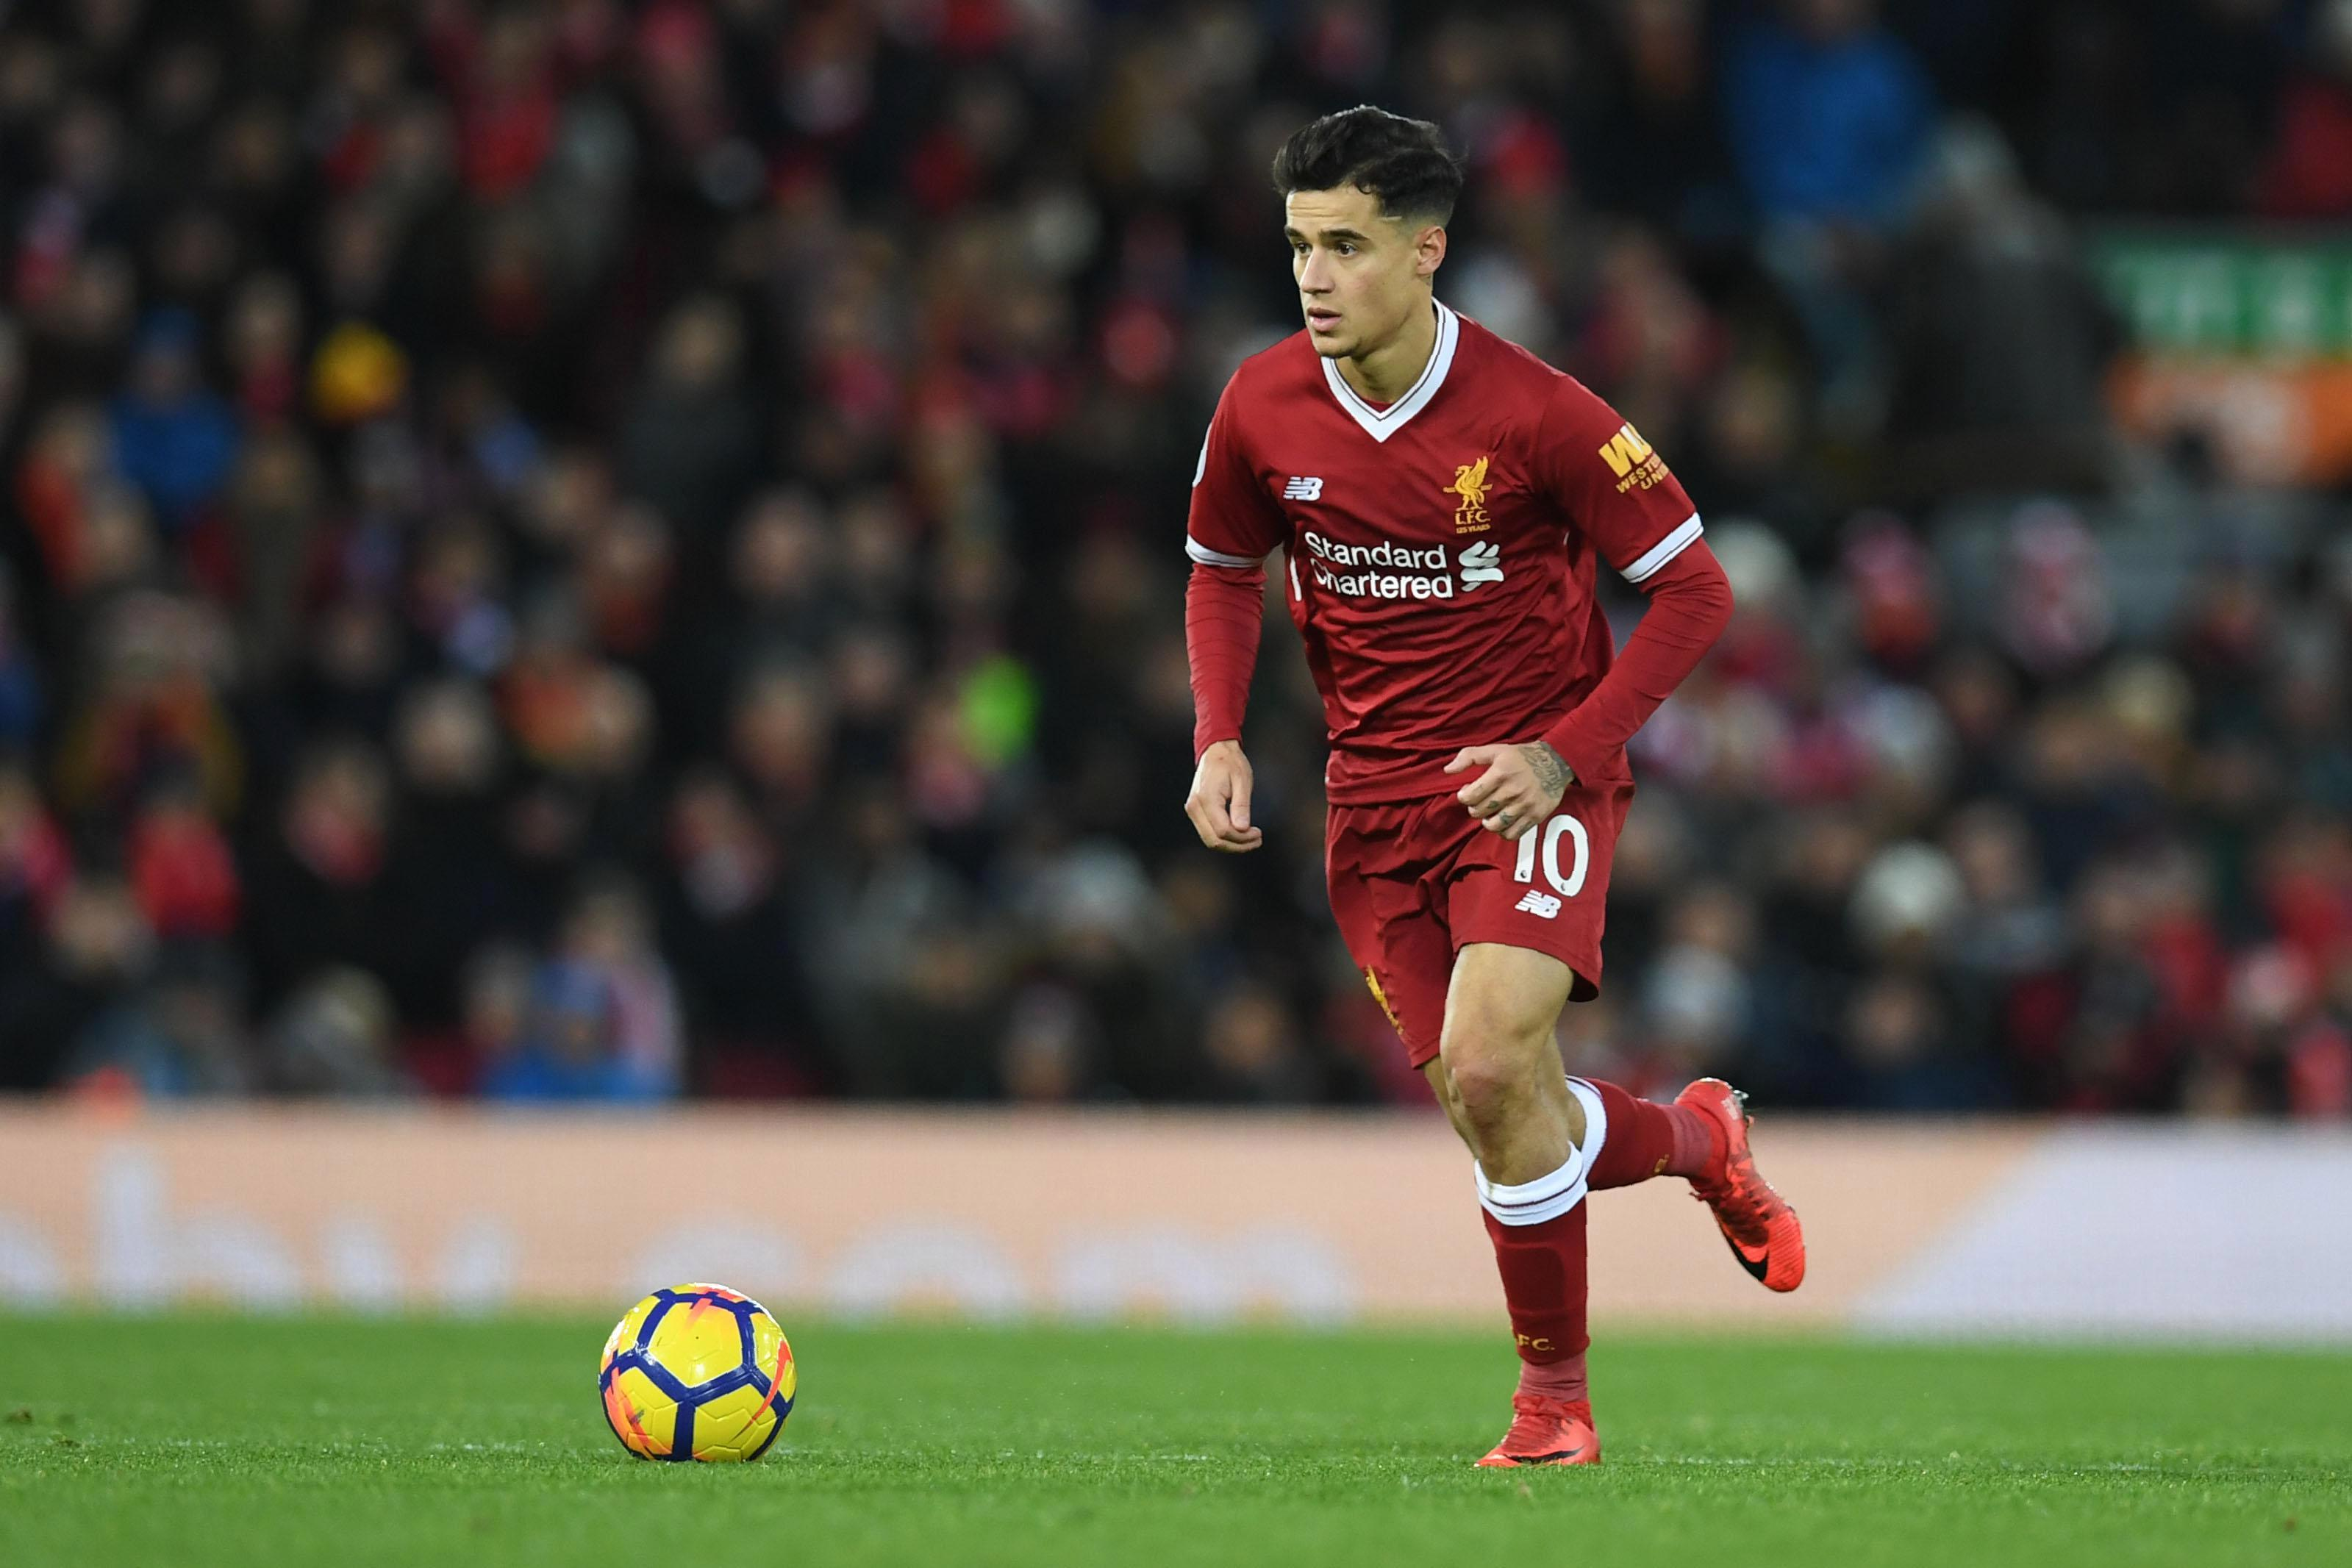 Barcelona have reportedly tabled a £133million bid for Philippe Coutinho